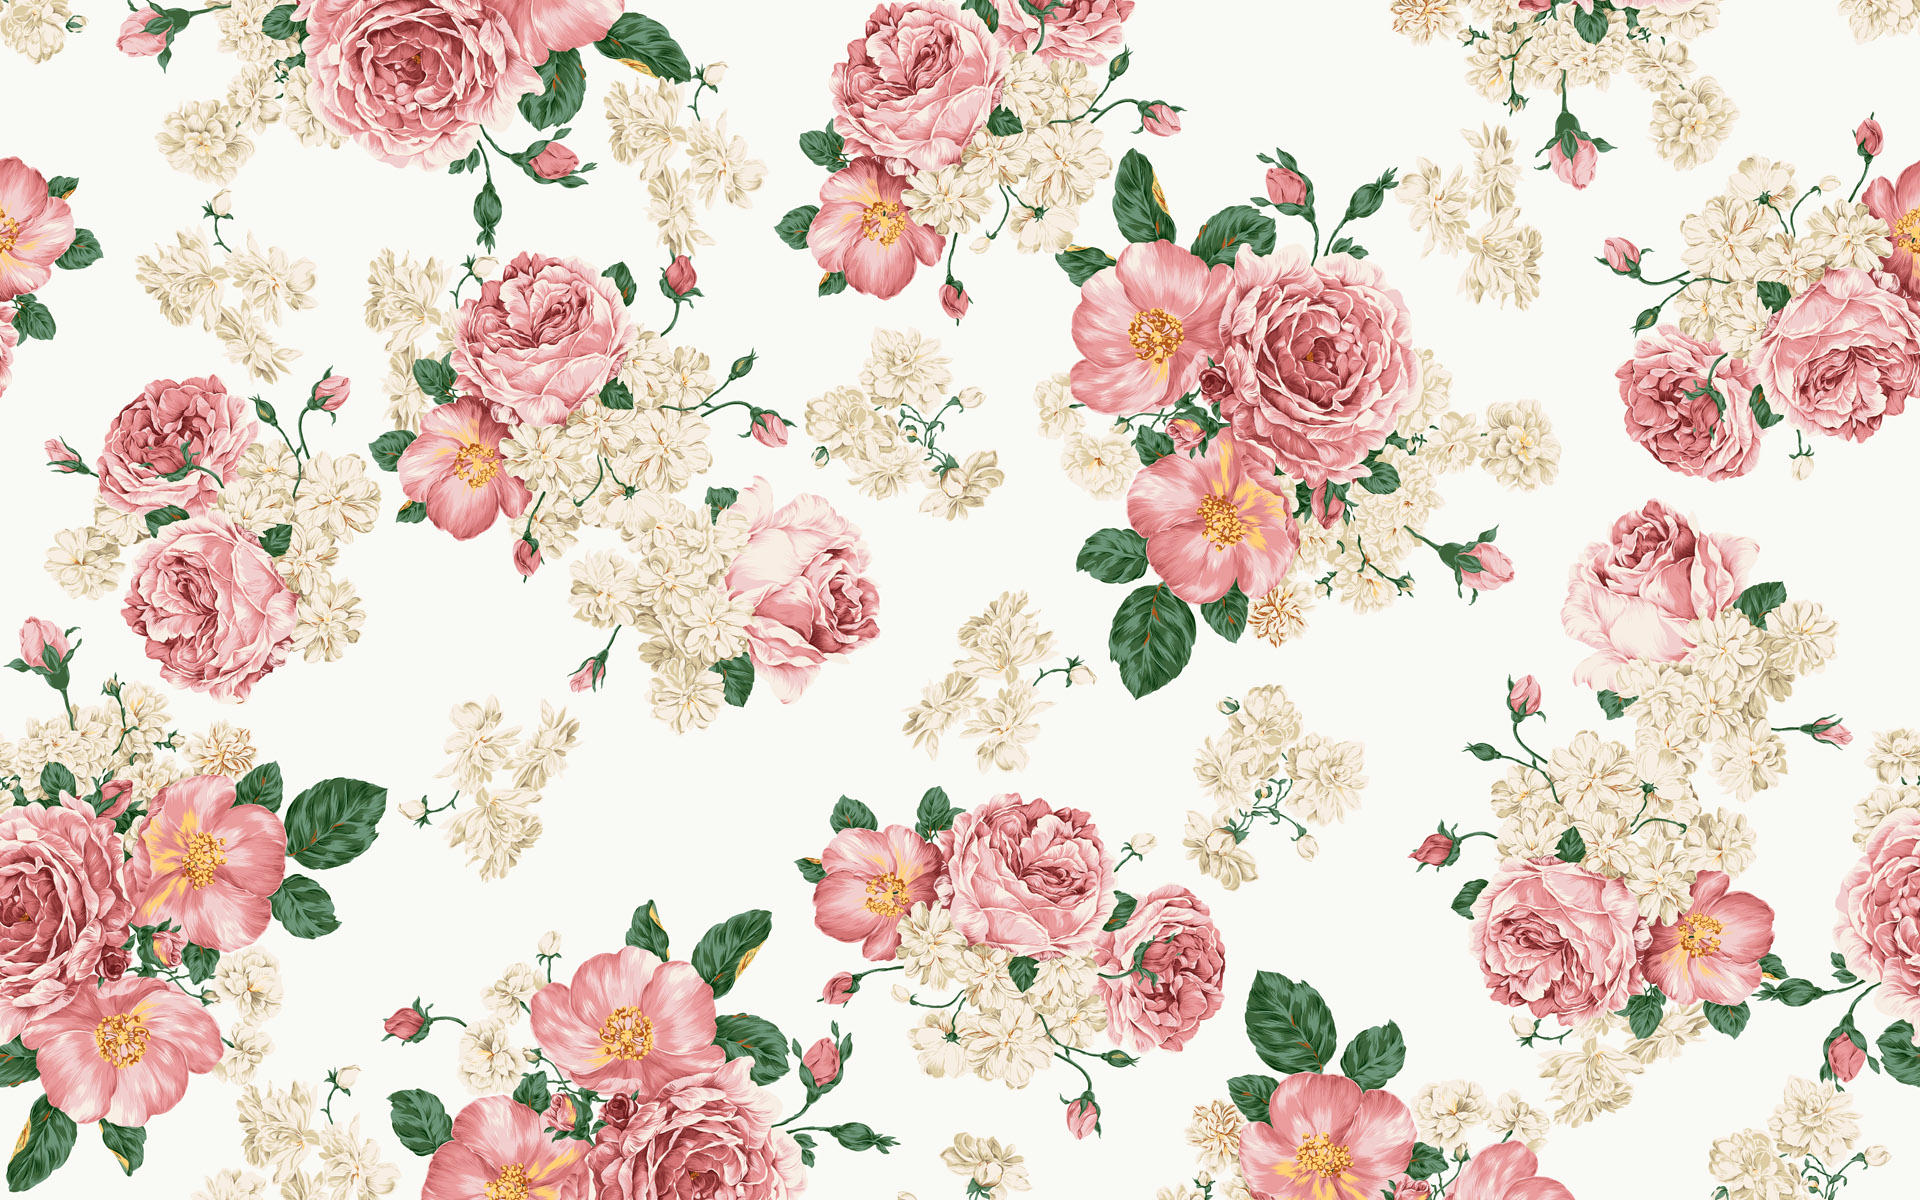 File Name 804024 1920x1200px Flower Tumblr Browser Themes Desktop 1920x1200